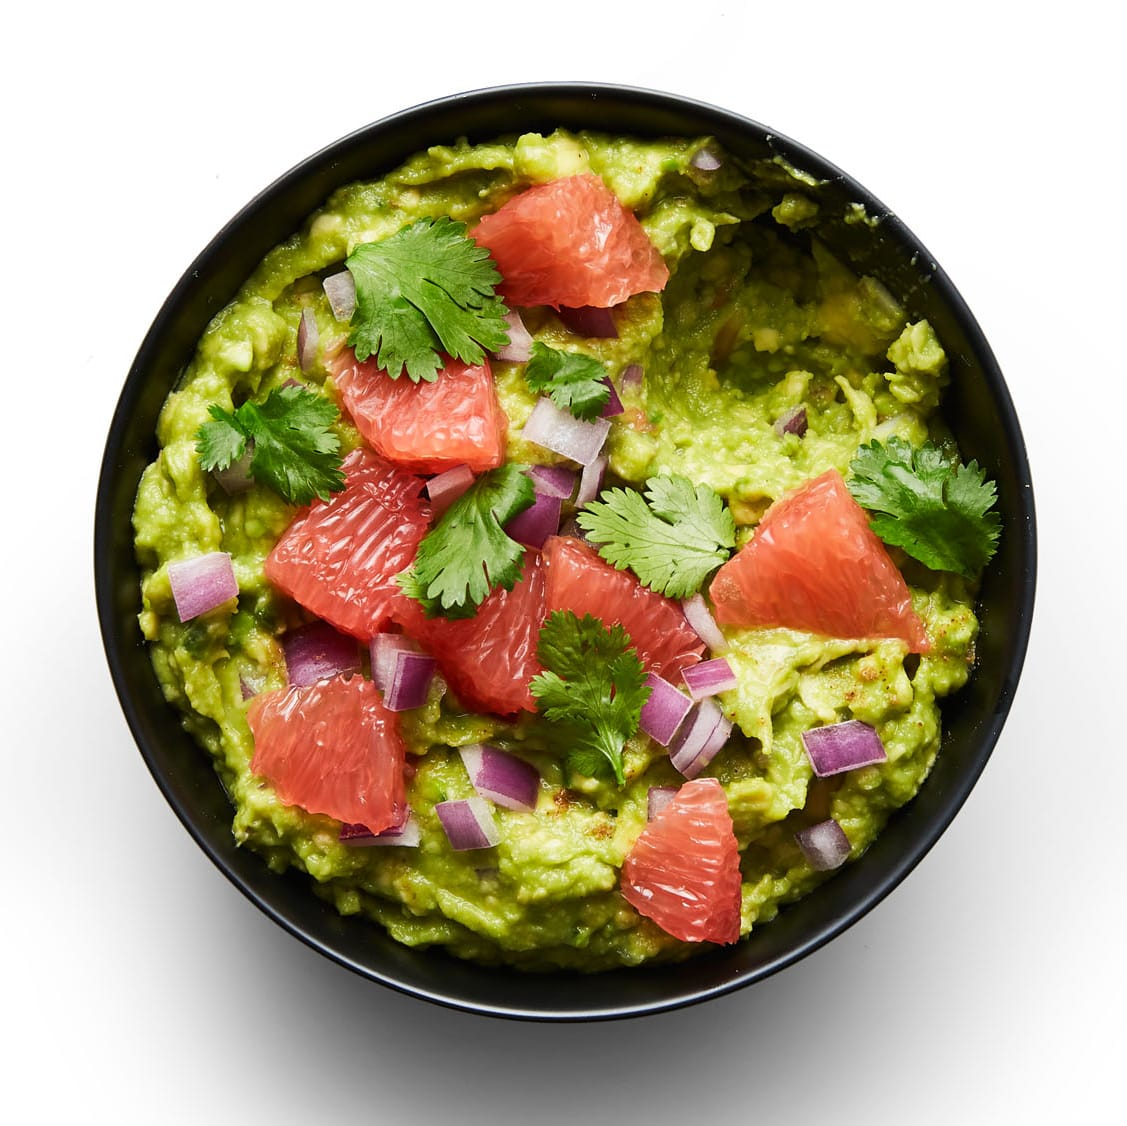 Rachel Ray's Grapefruit and Tequila Guacamole